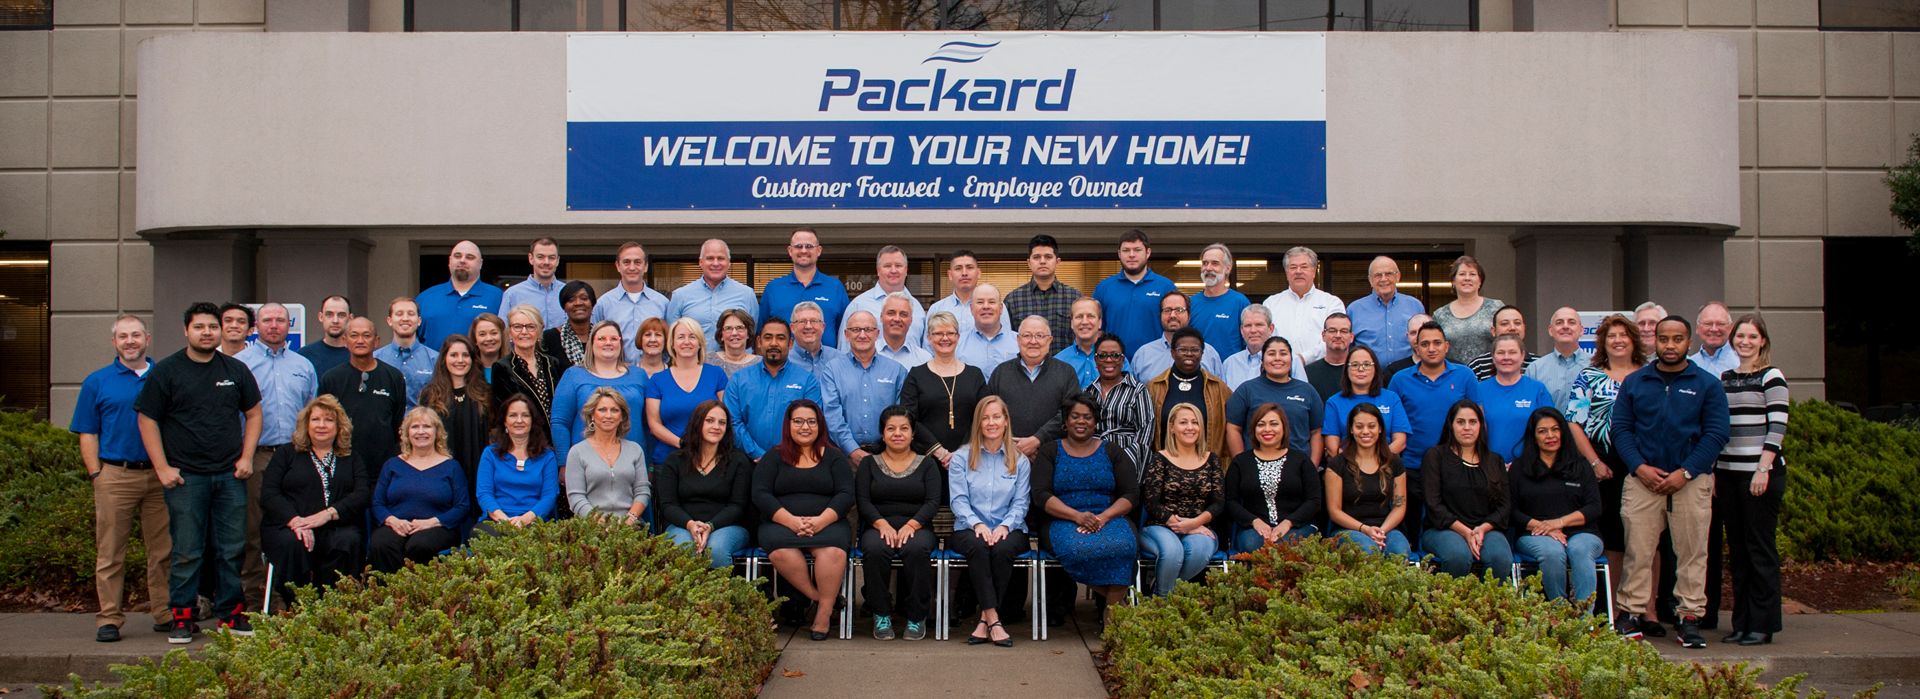 web-2018-Packard-Staff